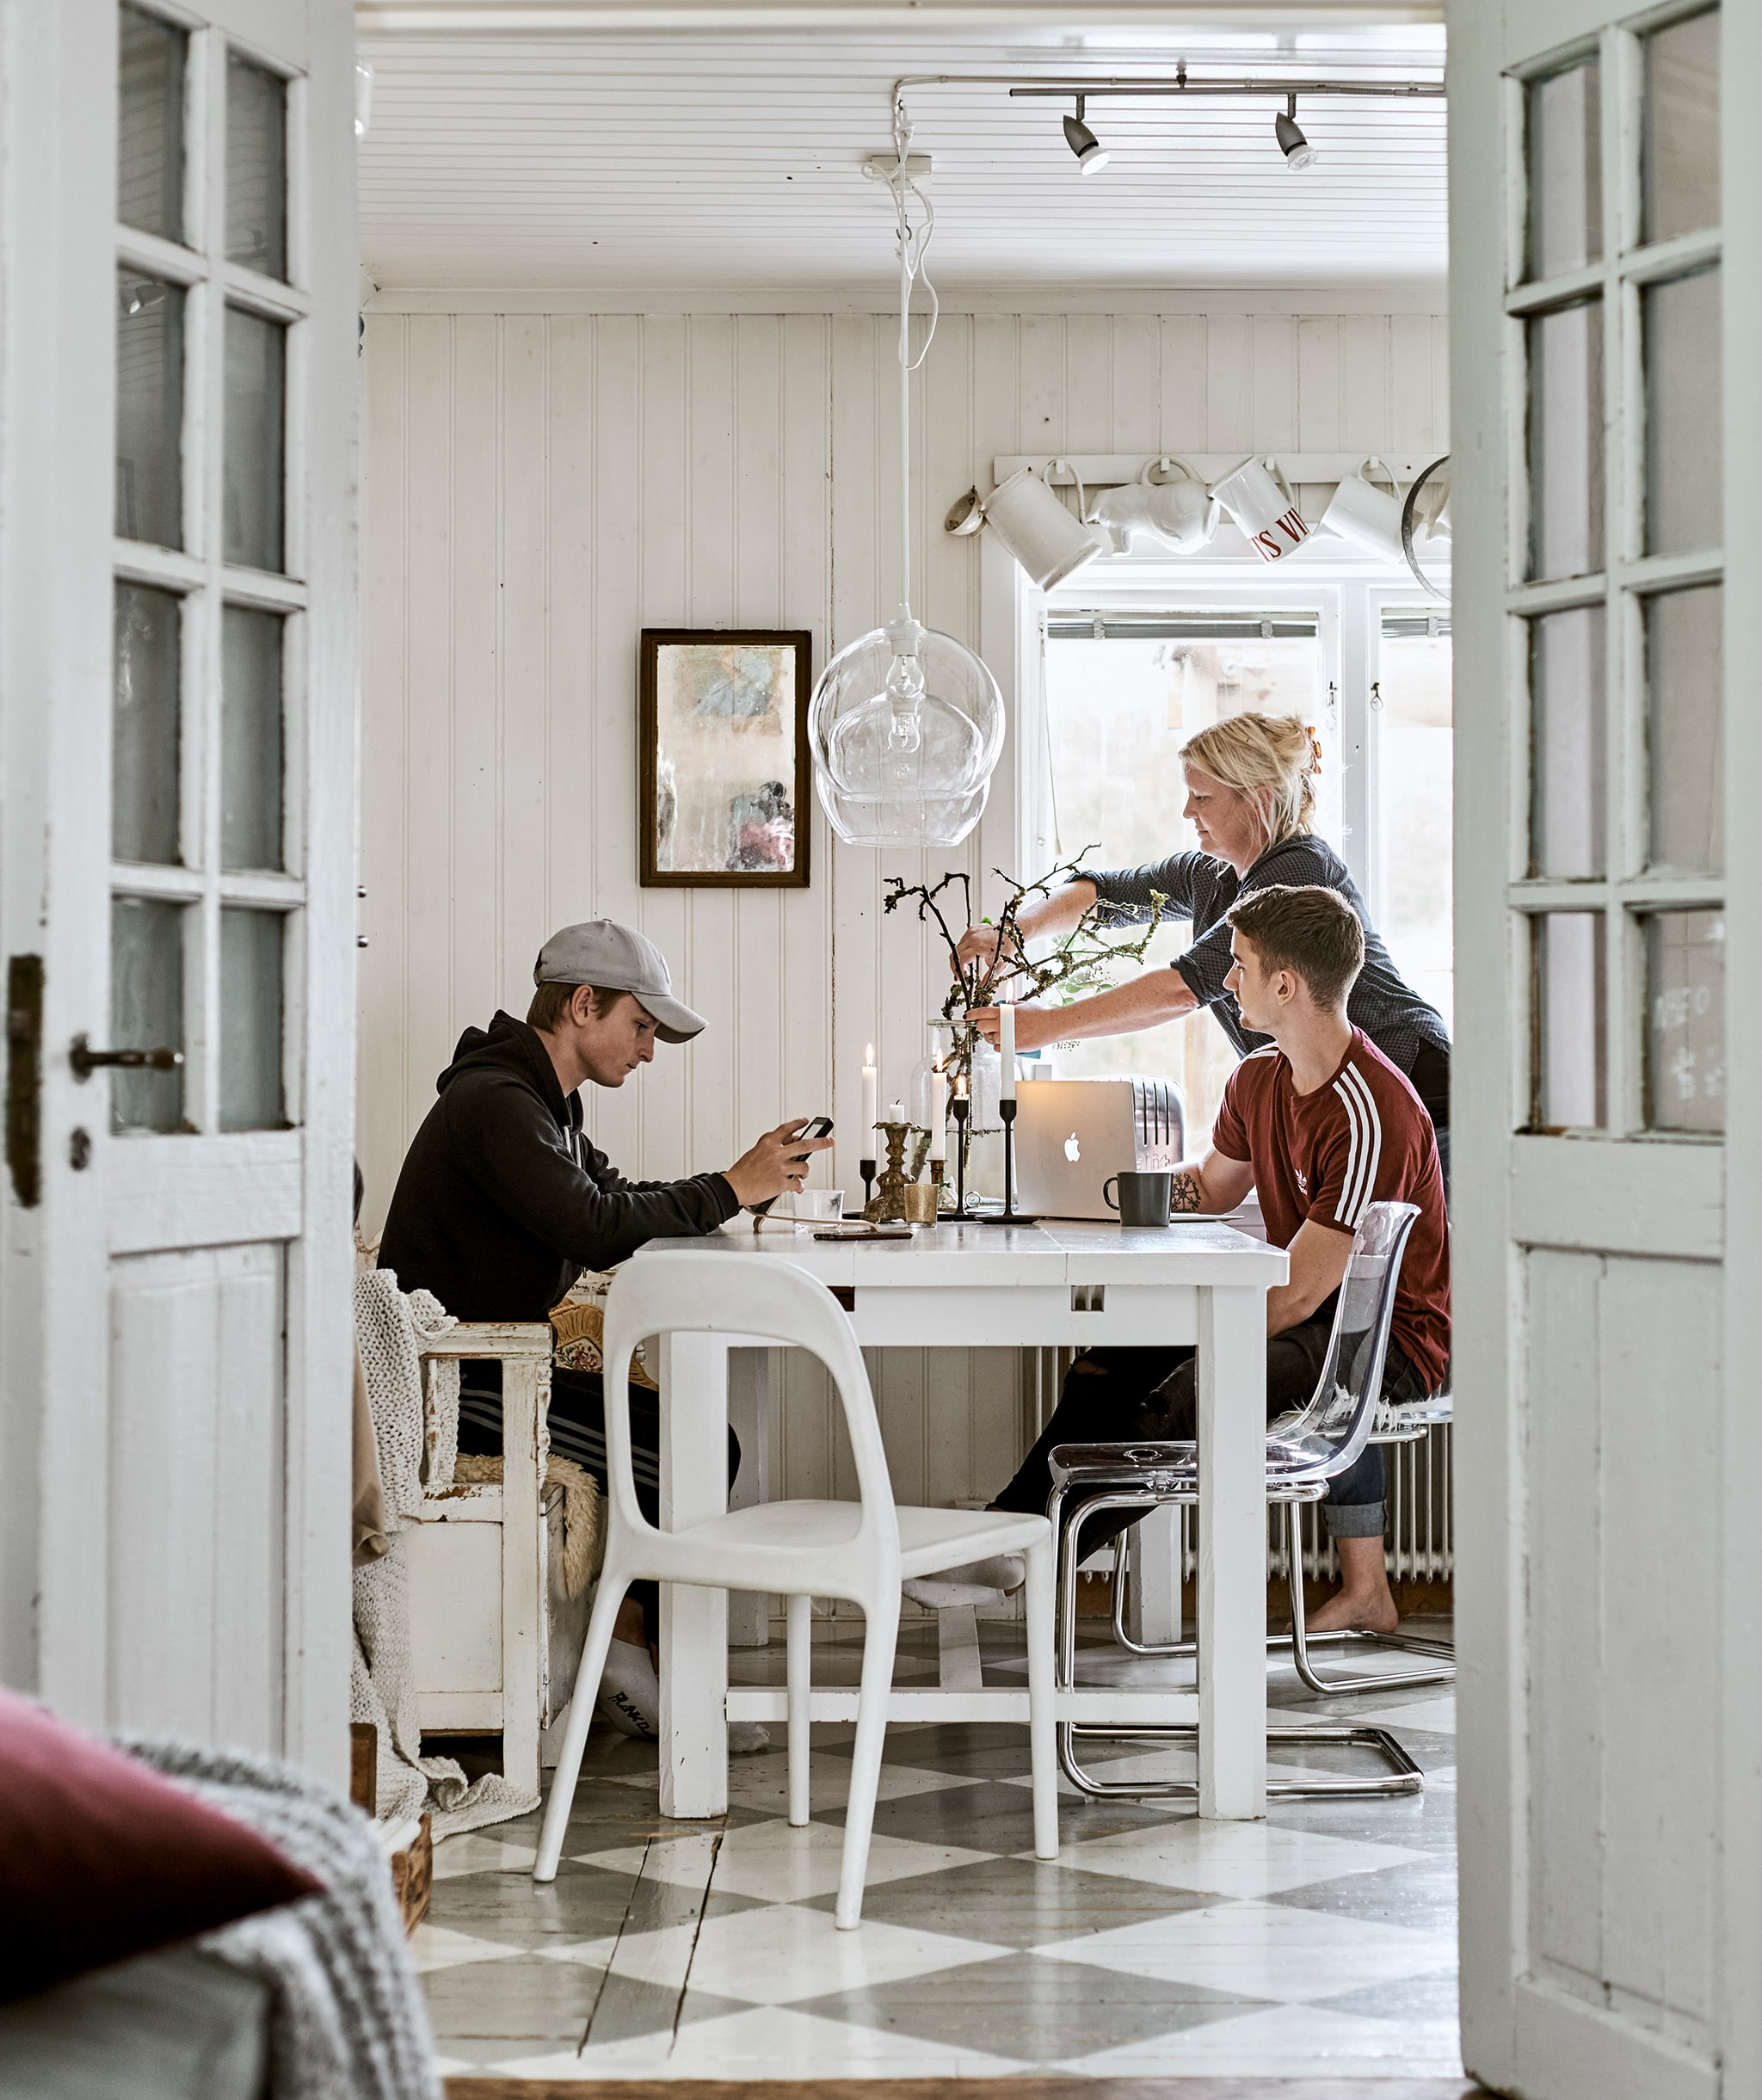 French doors open to a dining room with checked floor. A family sits at a white dining table, glass lamps hang overhead.